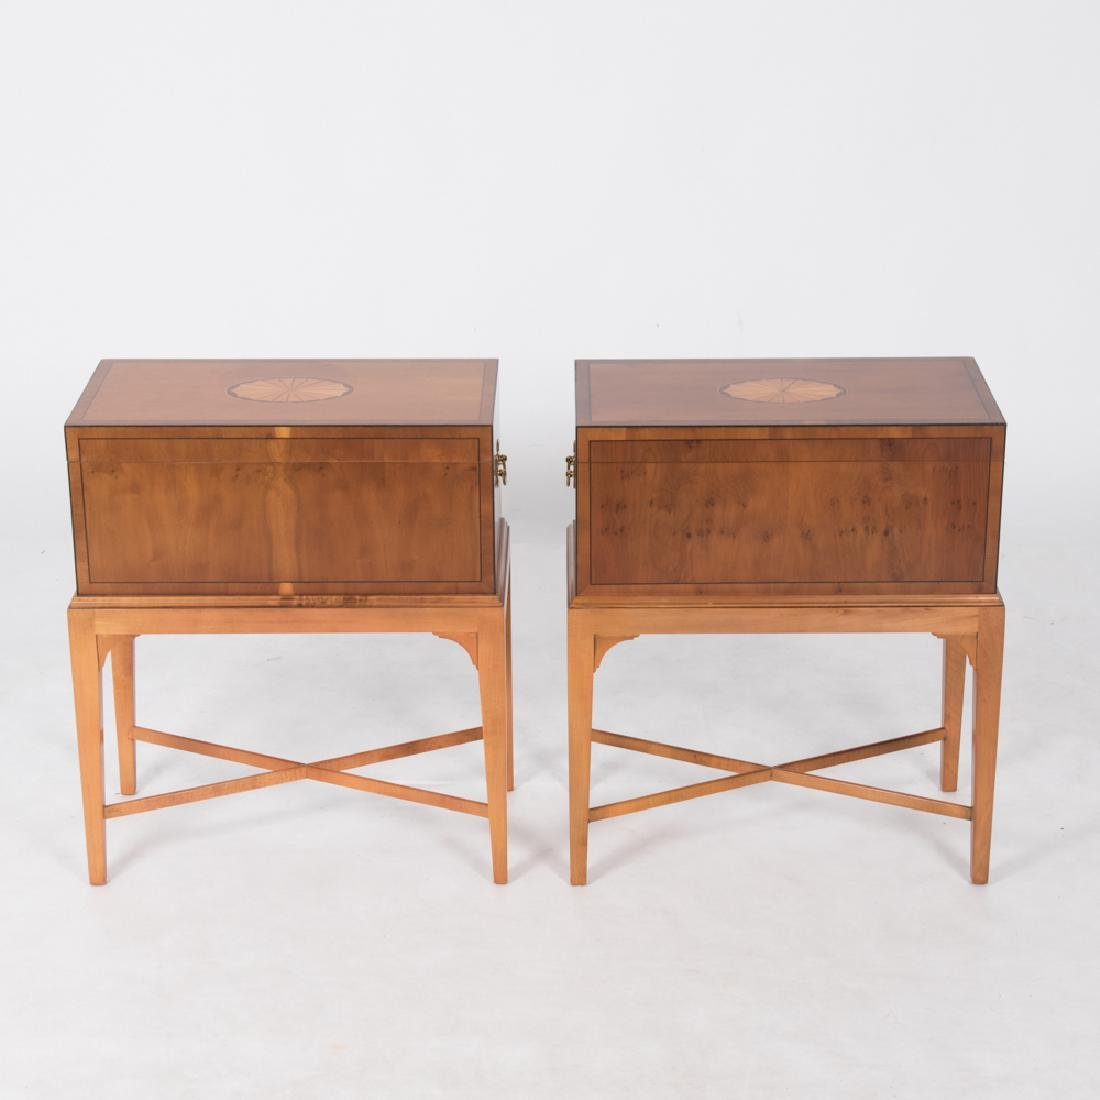 A Pair of Baker Furniture Georgian Style Fruitwood